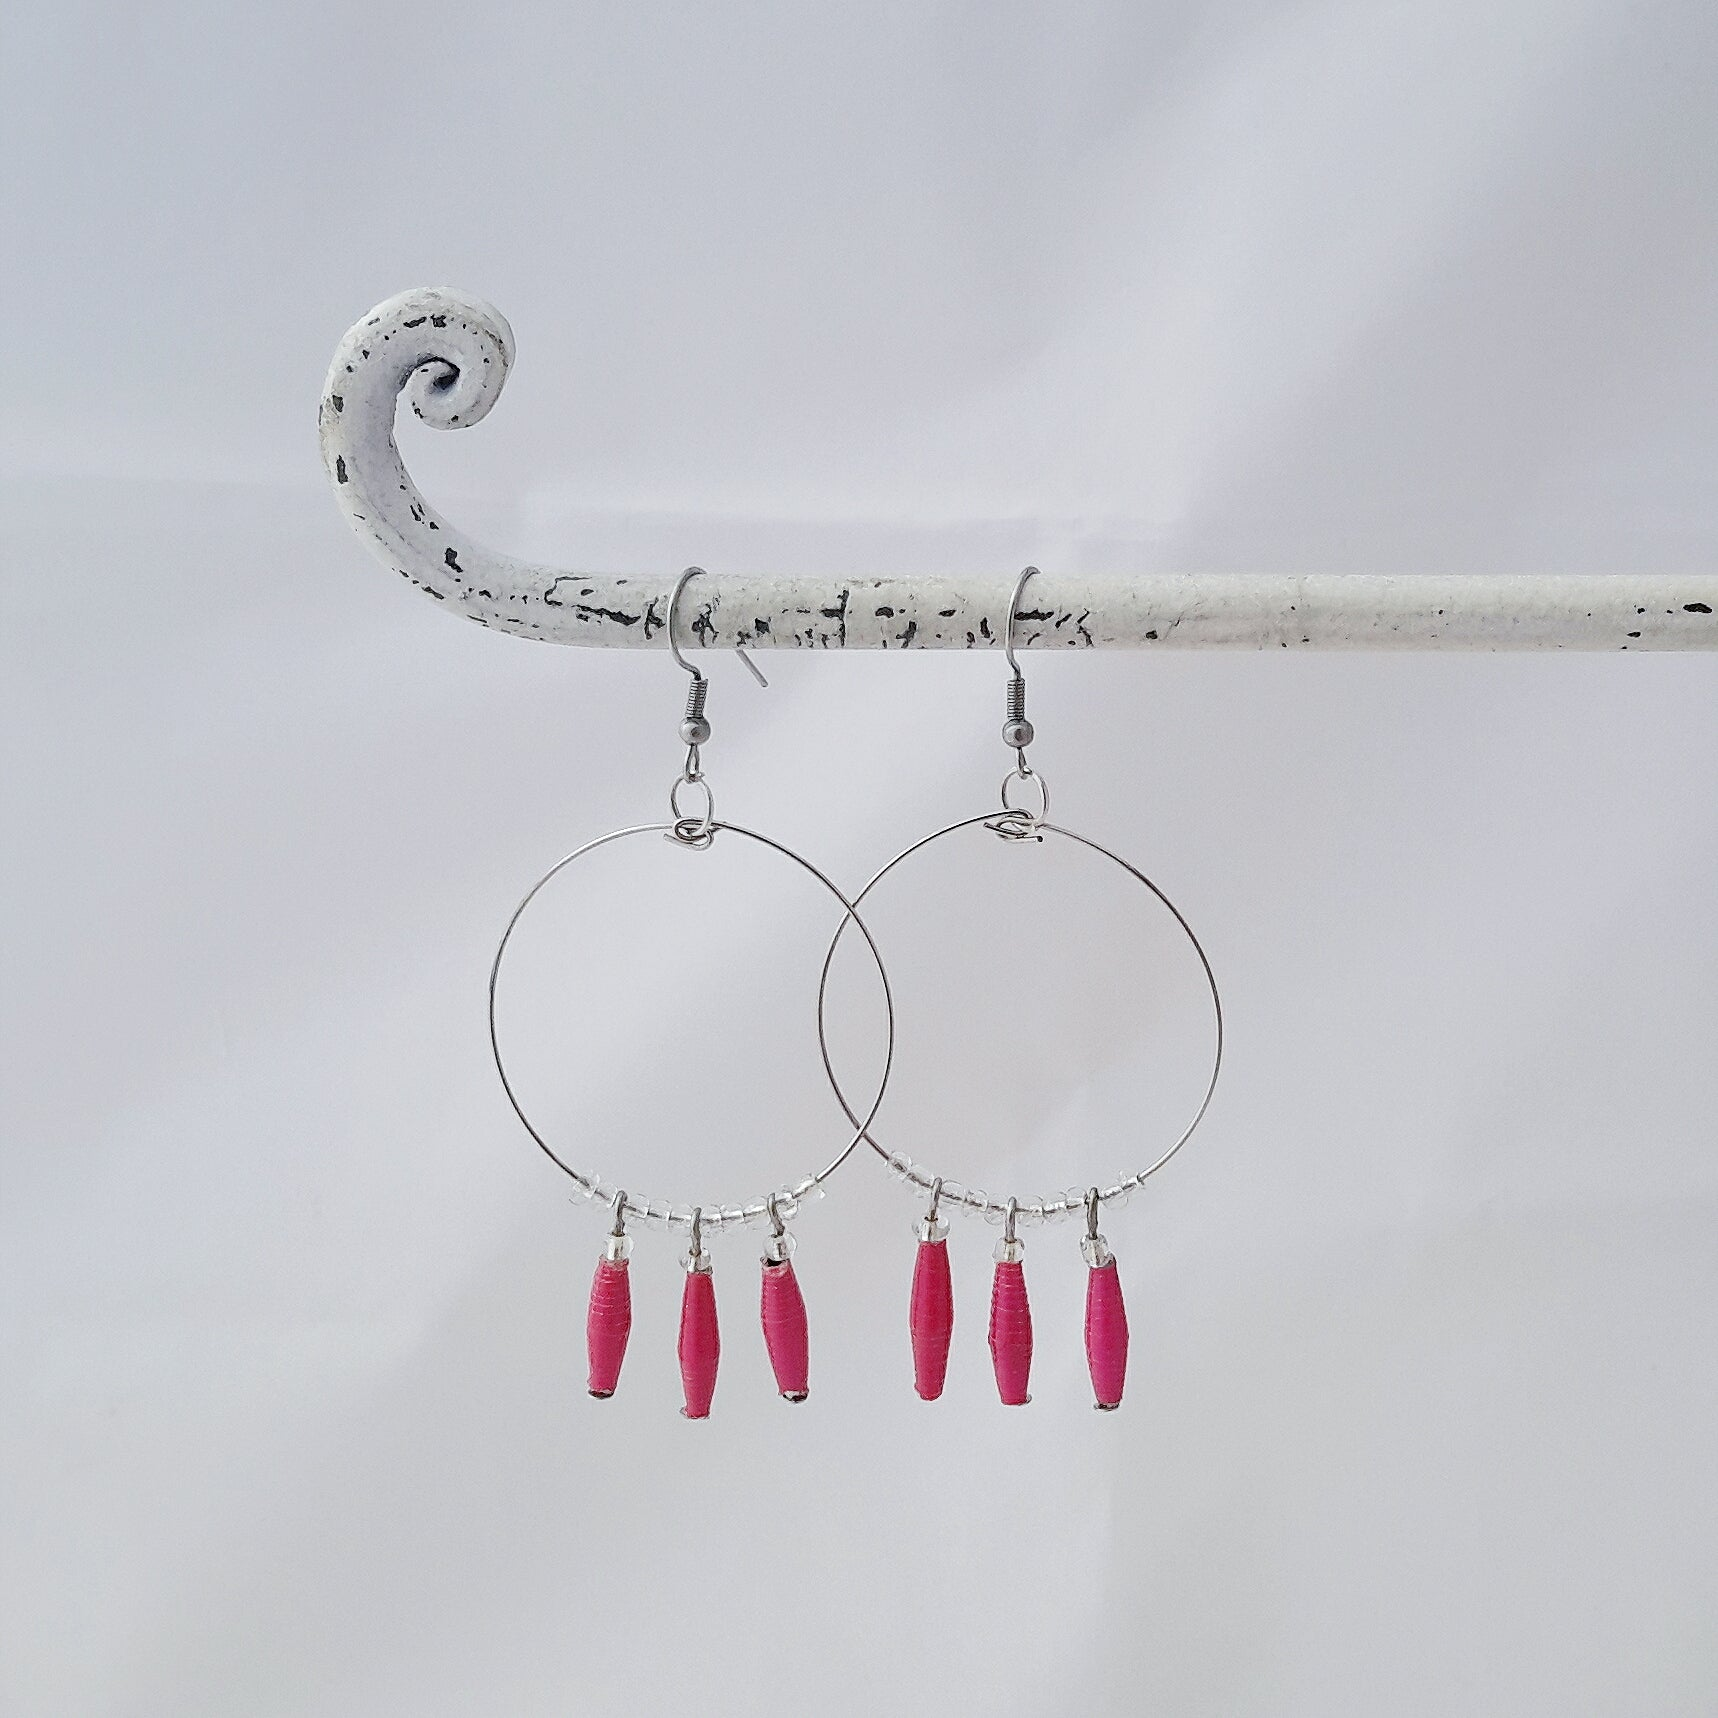 Hand made pink design paper bead earrings made out of recycled paper in Uganda by principles of fair trade, ethical and sustainable fashion, empowering women of post war area, by Finnish / Scandinavian brand, Agulu Paper Beads. Eettiset käsintehdyt pinkit design paperihelmikorvakorut, jotka on tehty reilun kaupan periaattein työllistämällä kehitysmaan nasia.